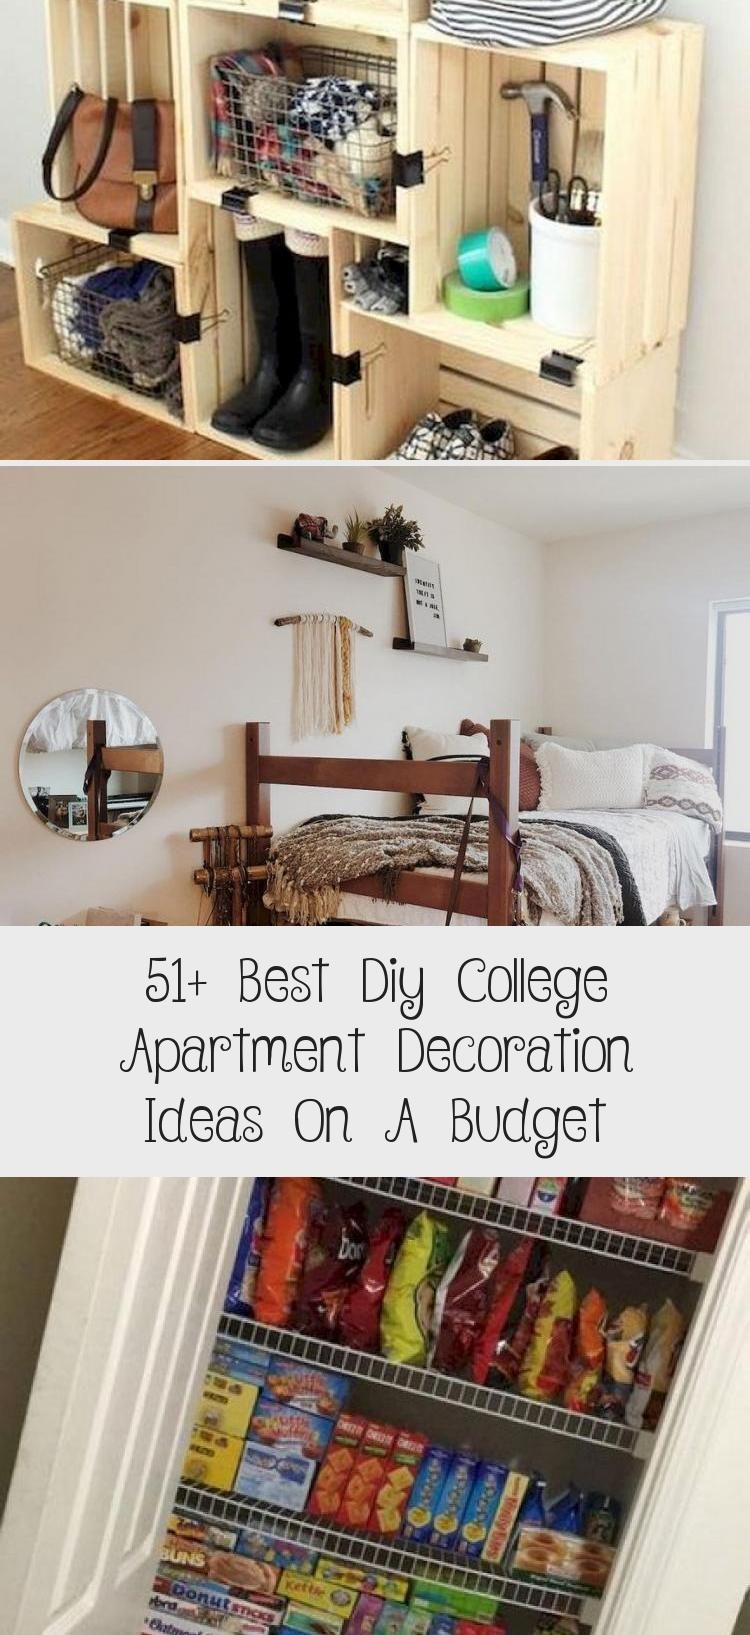 51+ Best Diy College Apartment Decoration Ideas On A Budget - Decor -  51+ Best DIY College Apartment Decoration Ideas on A Budget #apartment #apartmentdecorating #apartm - #Apartment #Budget #College #Decor #Decoration #Diy #Ideas #shabbychicdecoronabudget #shabbychicdecorrustic #shabbychicdecorvintage